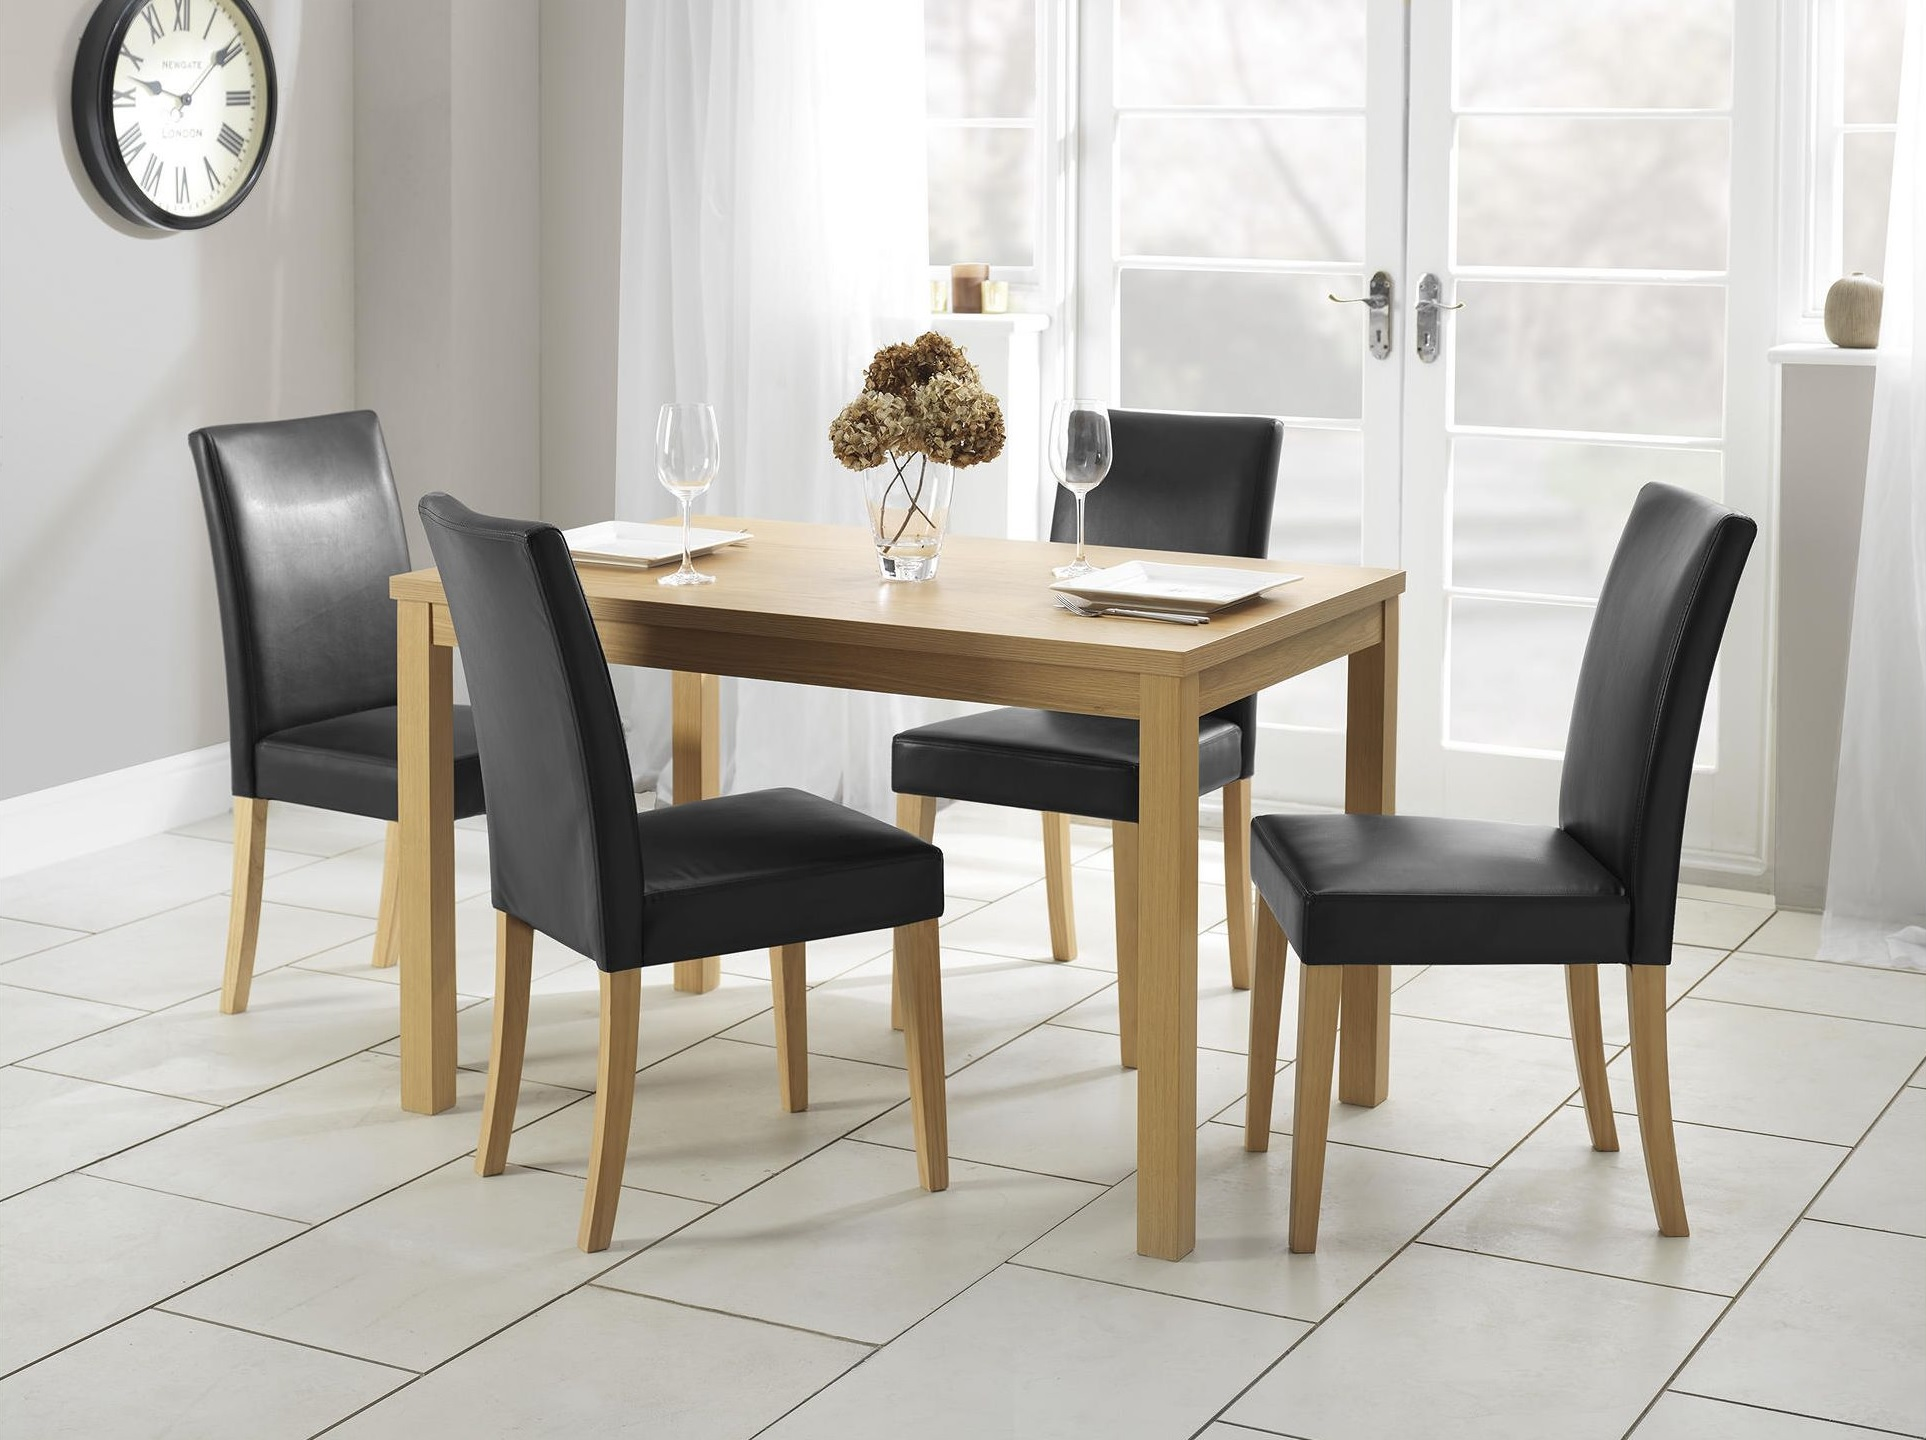 NEW Tesco Banbury 4 Leather Effect Seat Oak Veneer Dining Table Set